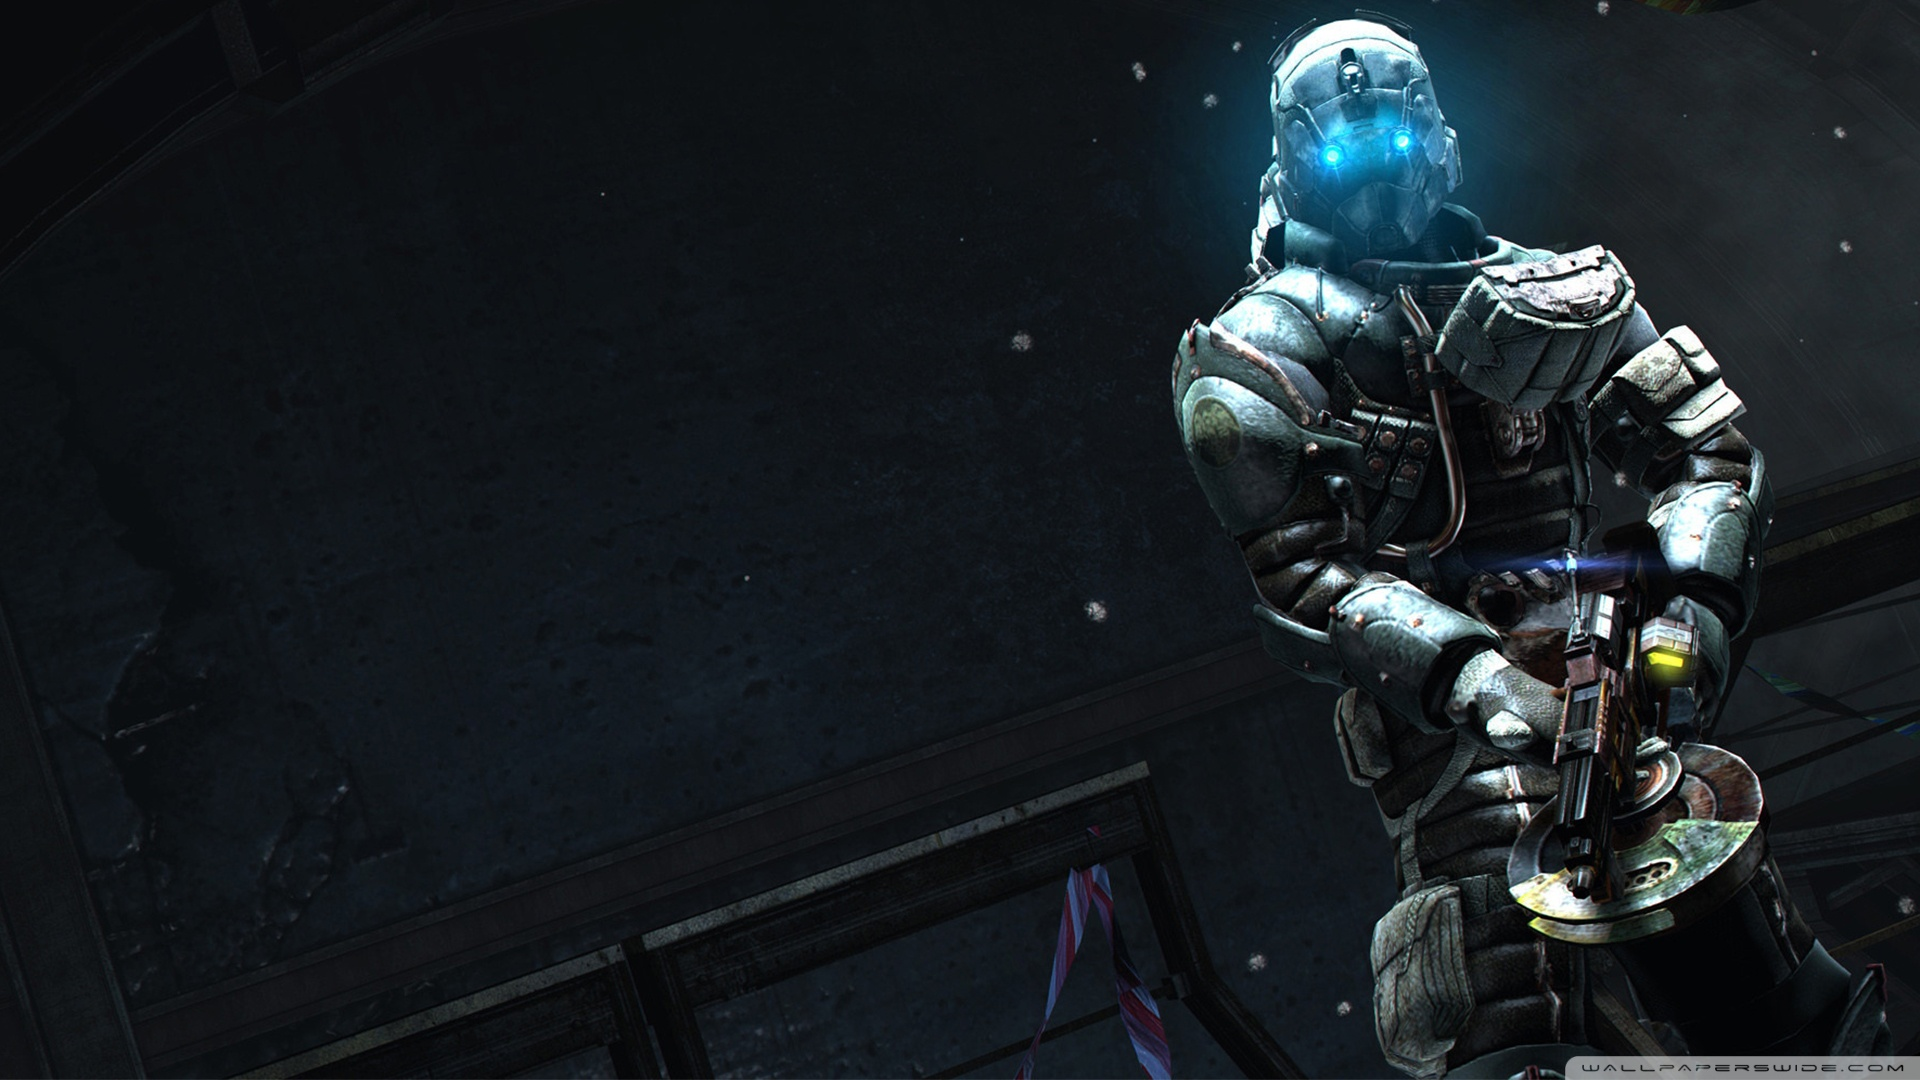 Standard - Dead Space 3 Android , HD Wallpaper & Backgrounds